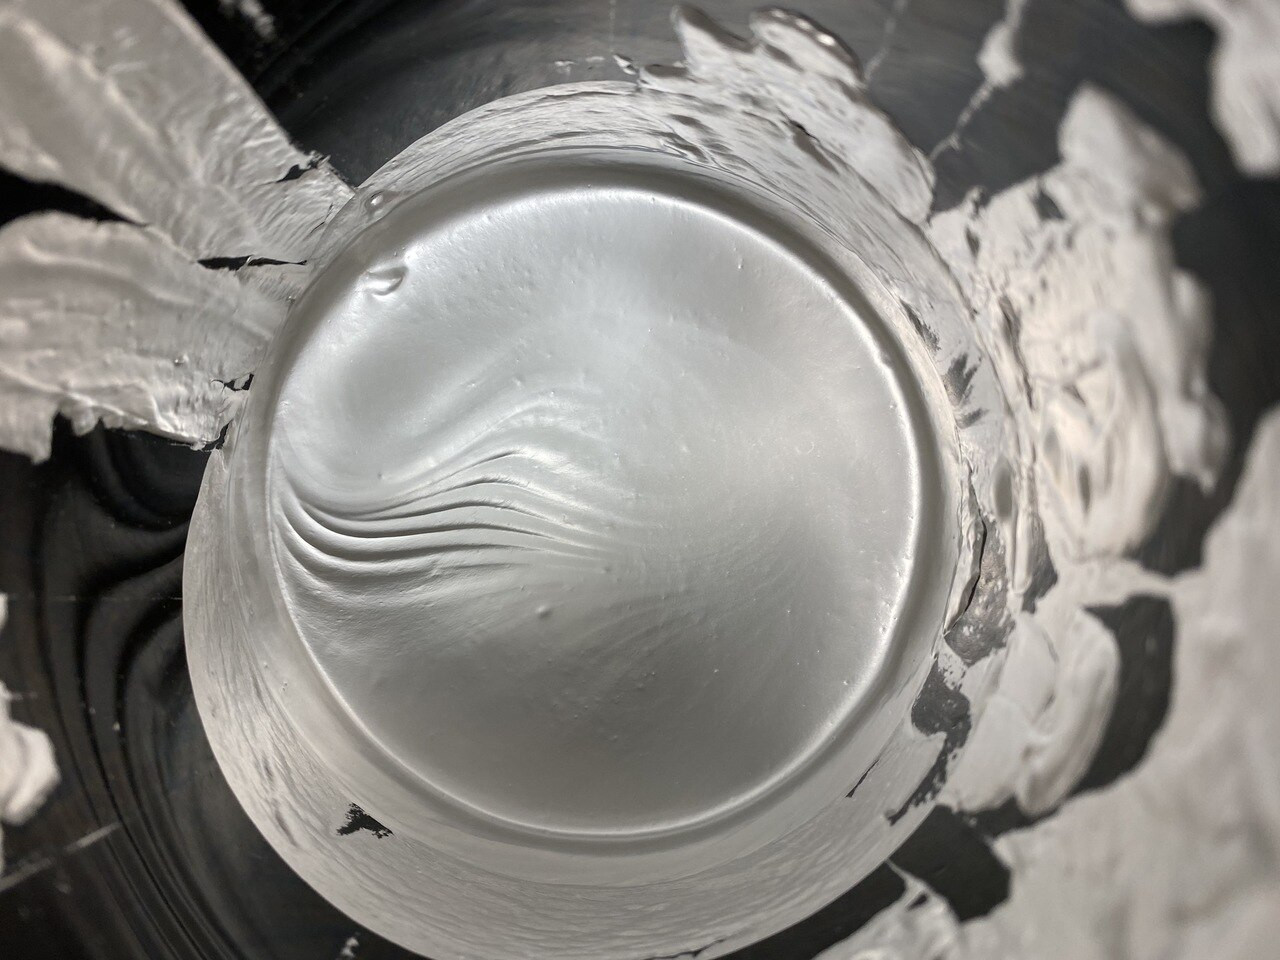 Water-based Silver Ink for screen printing, Low Curing Temperature 55C-30 minutes for PVDF-TrFE